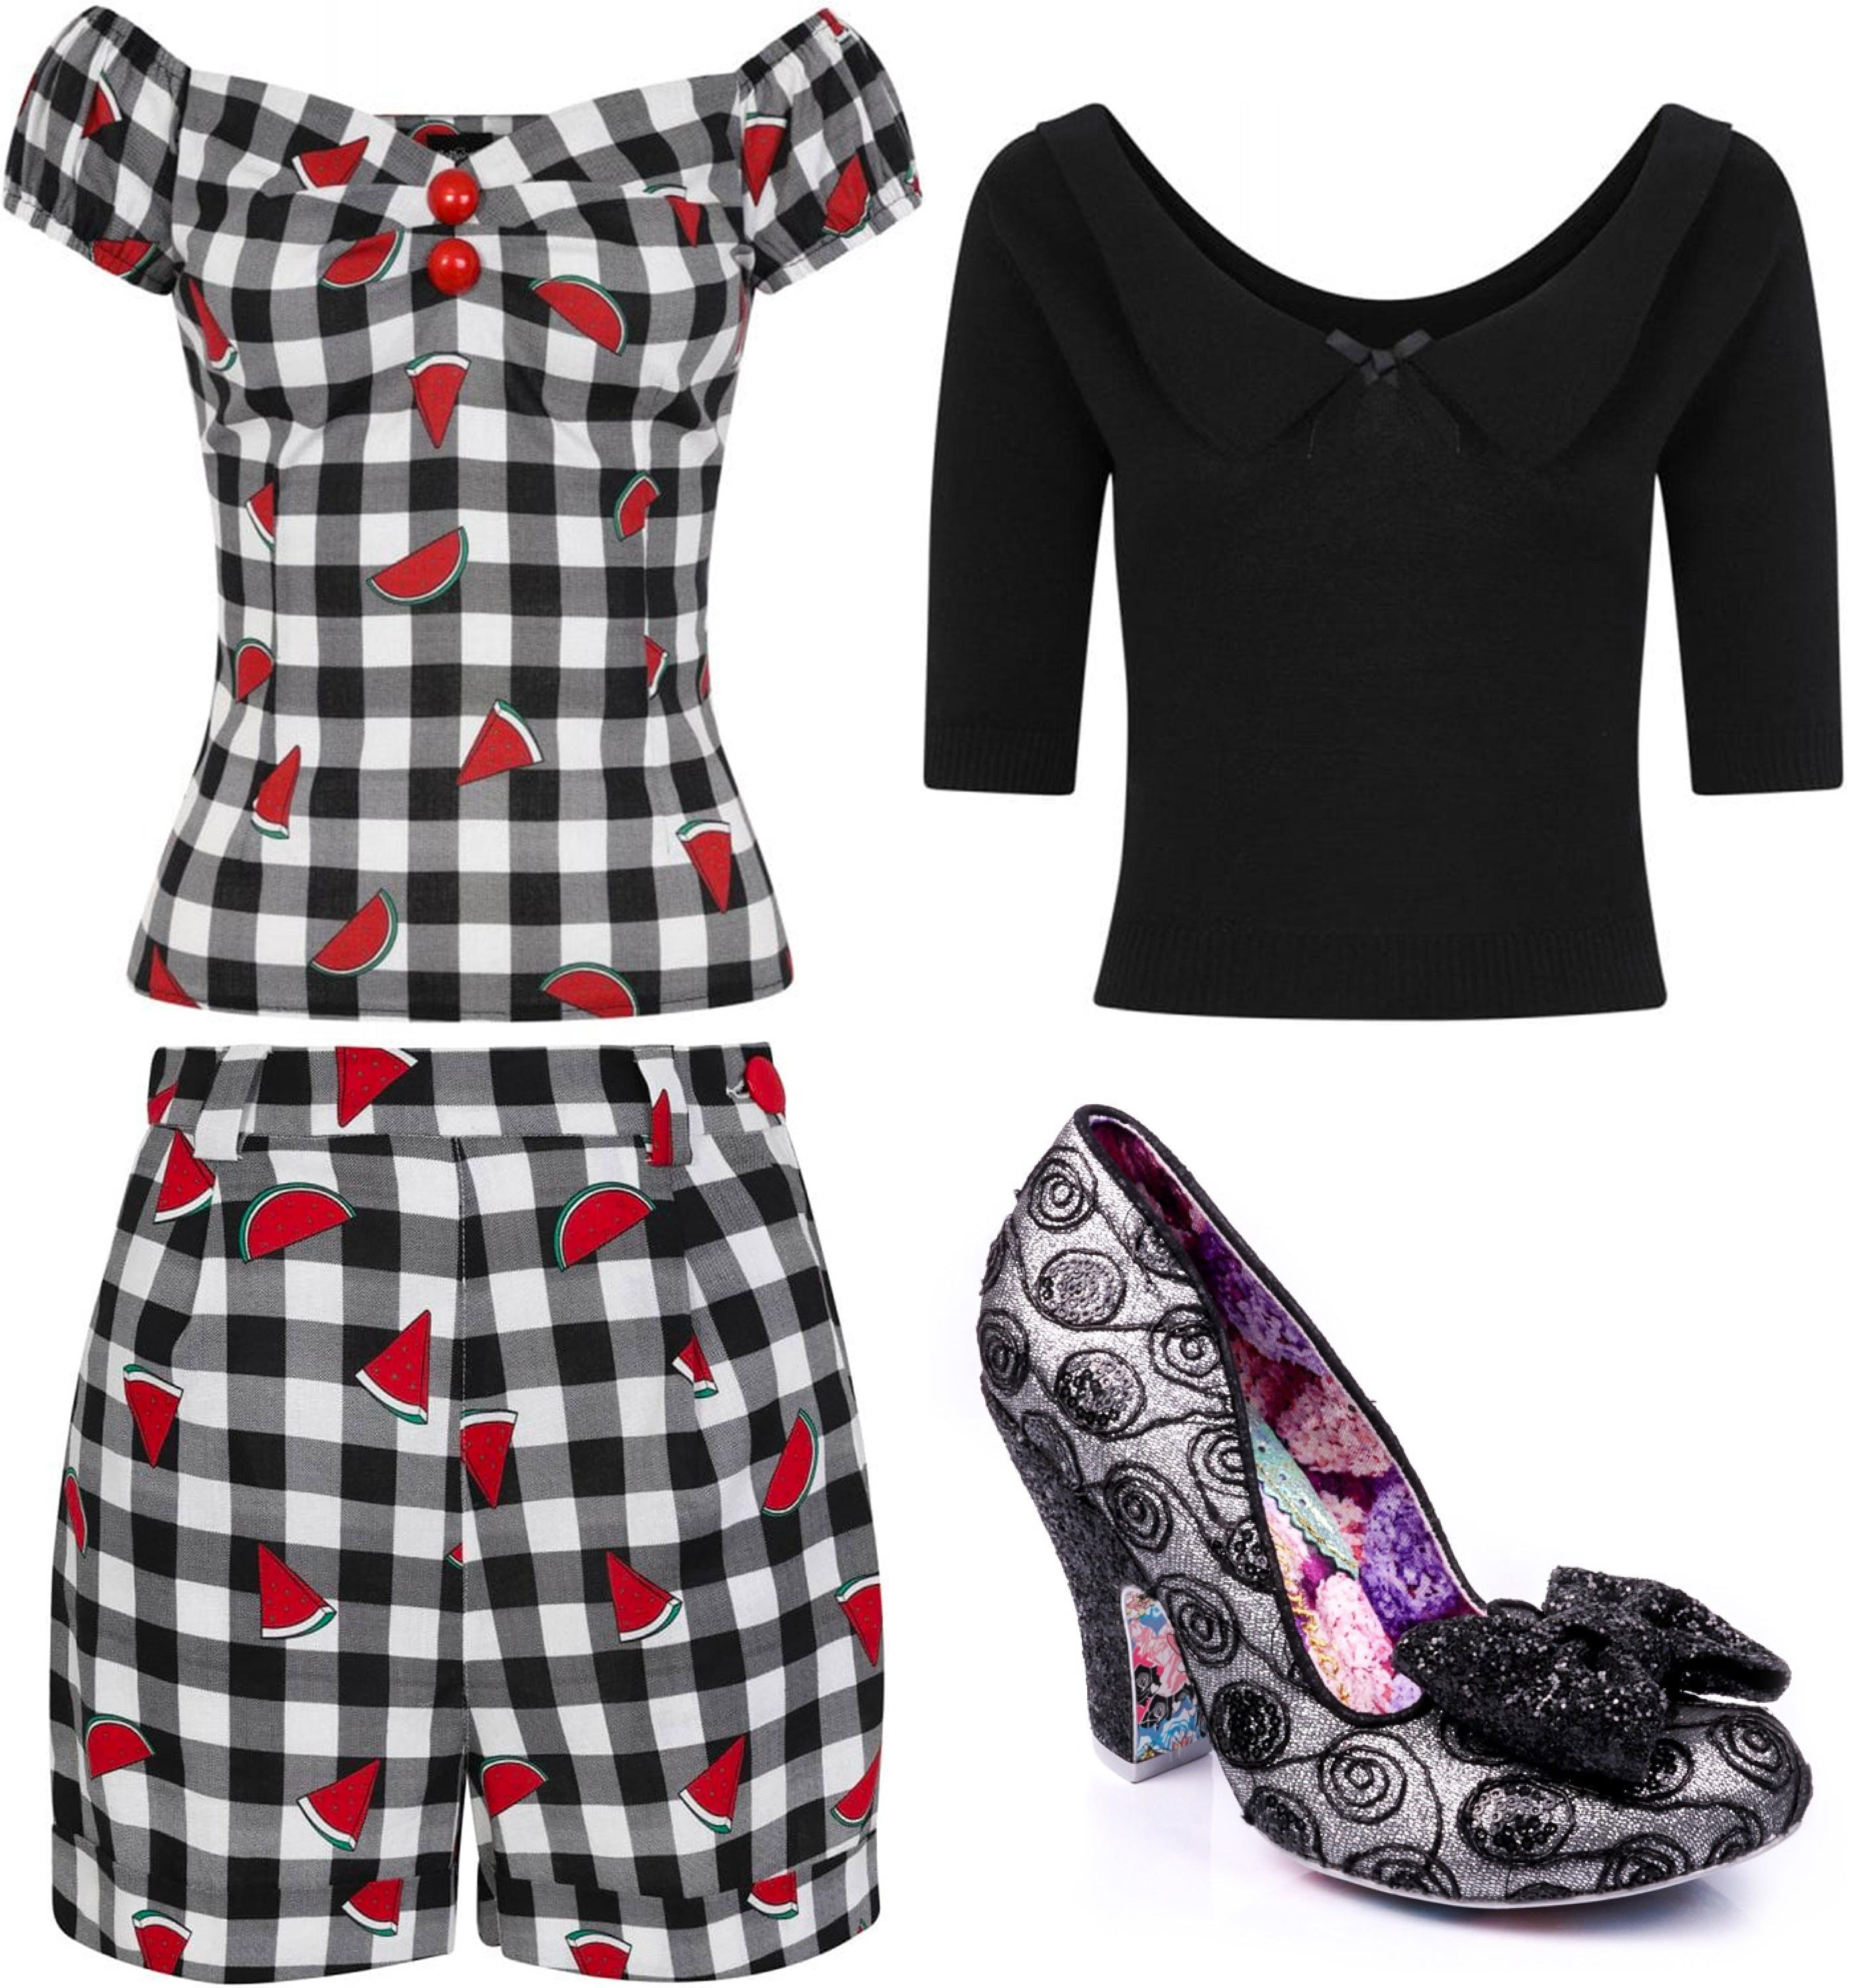 Collectif gingham top and shorts with Babette jumper and Nick of Time heels